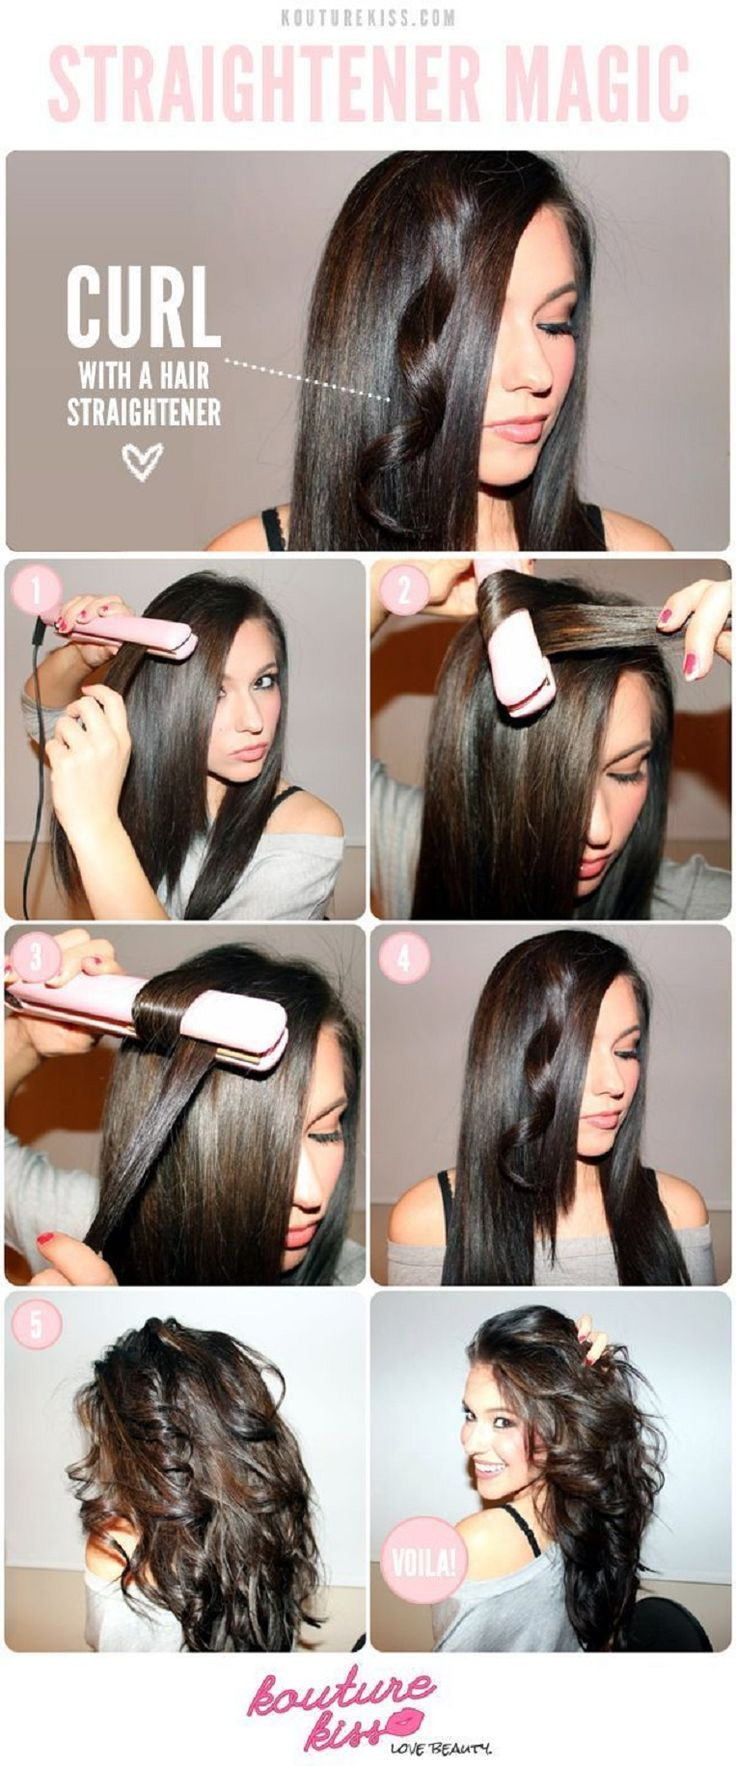 Curl With A Straightener = Messy Hairstyle - 15 Messy Hairstyle Tutorials from Pinterest to Master Now   GleamItUp